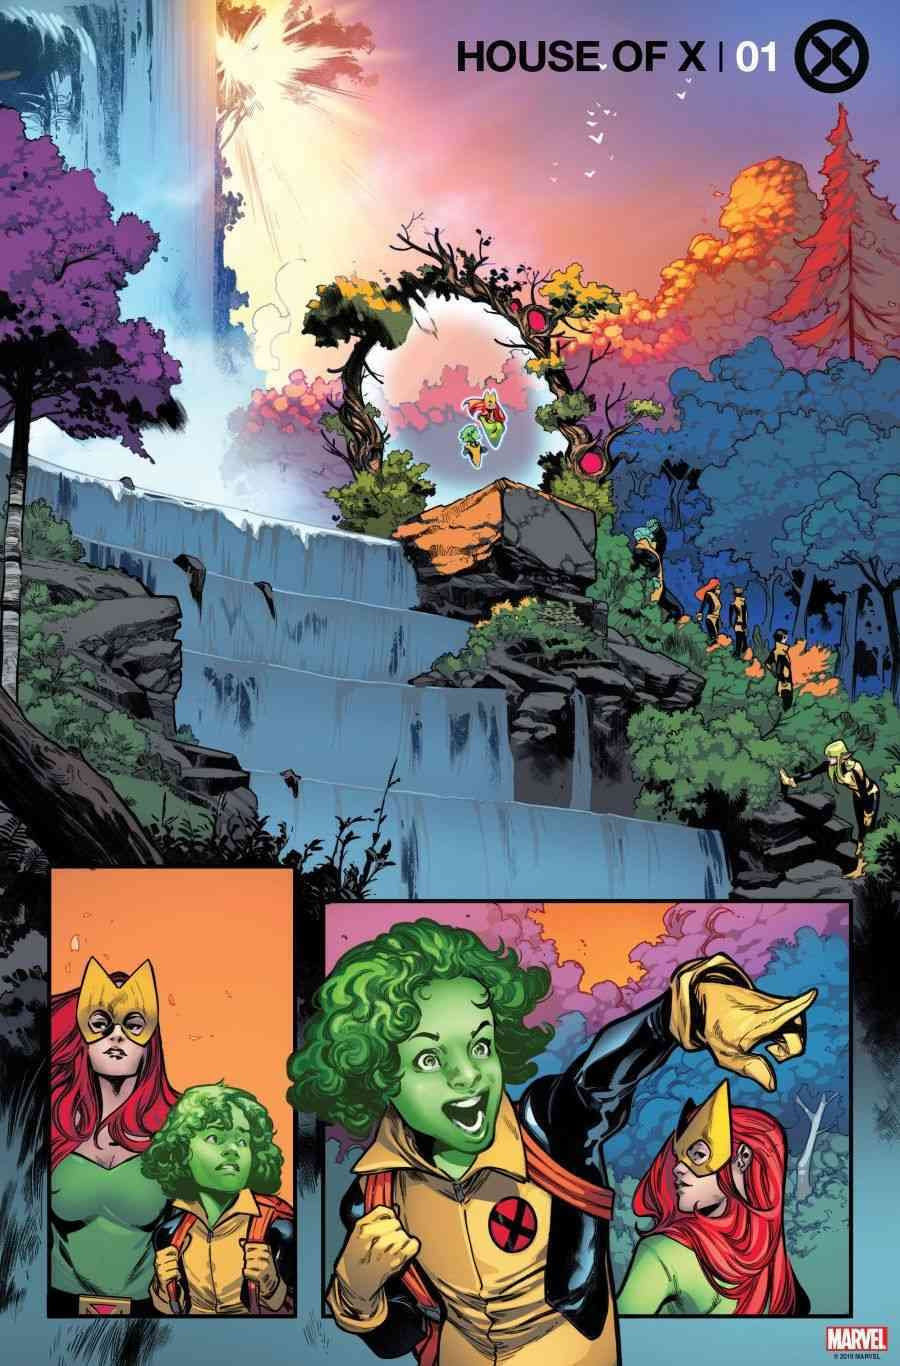 A New Look at Jonathan Hickman's House of X and Powers of X Ahead of X-Men Relaunch